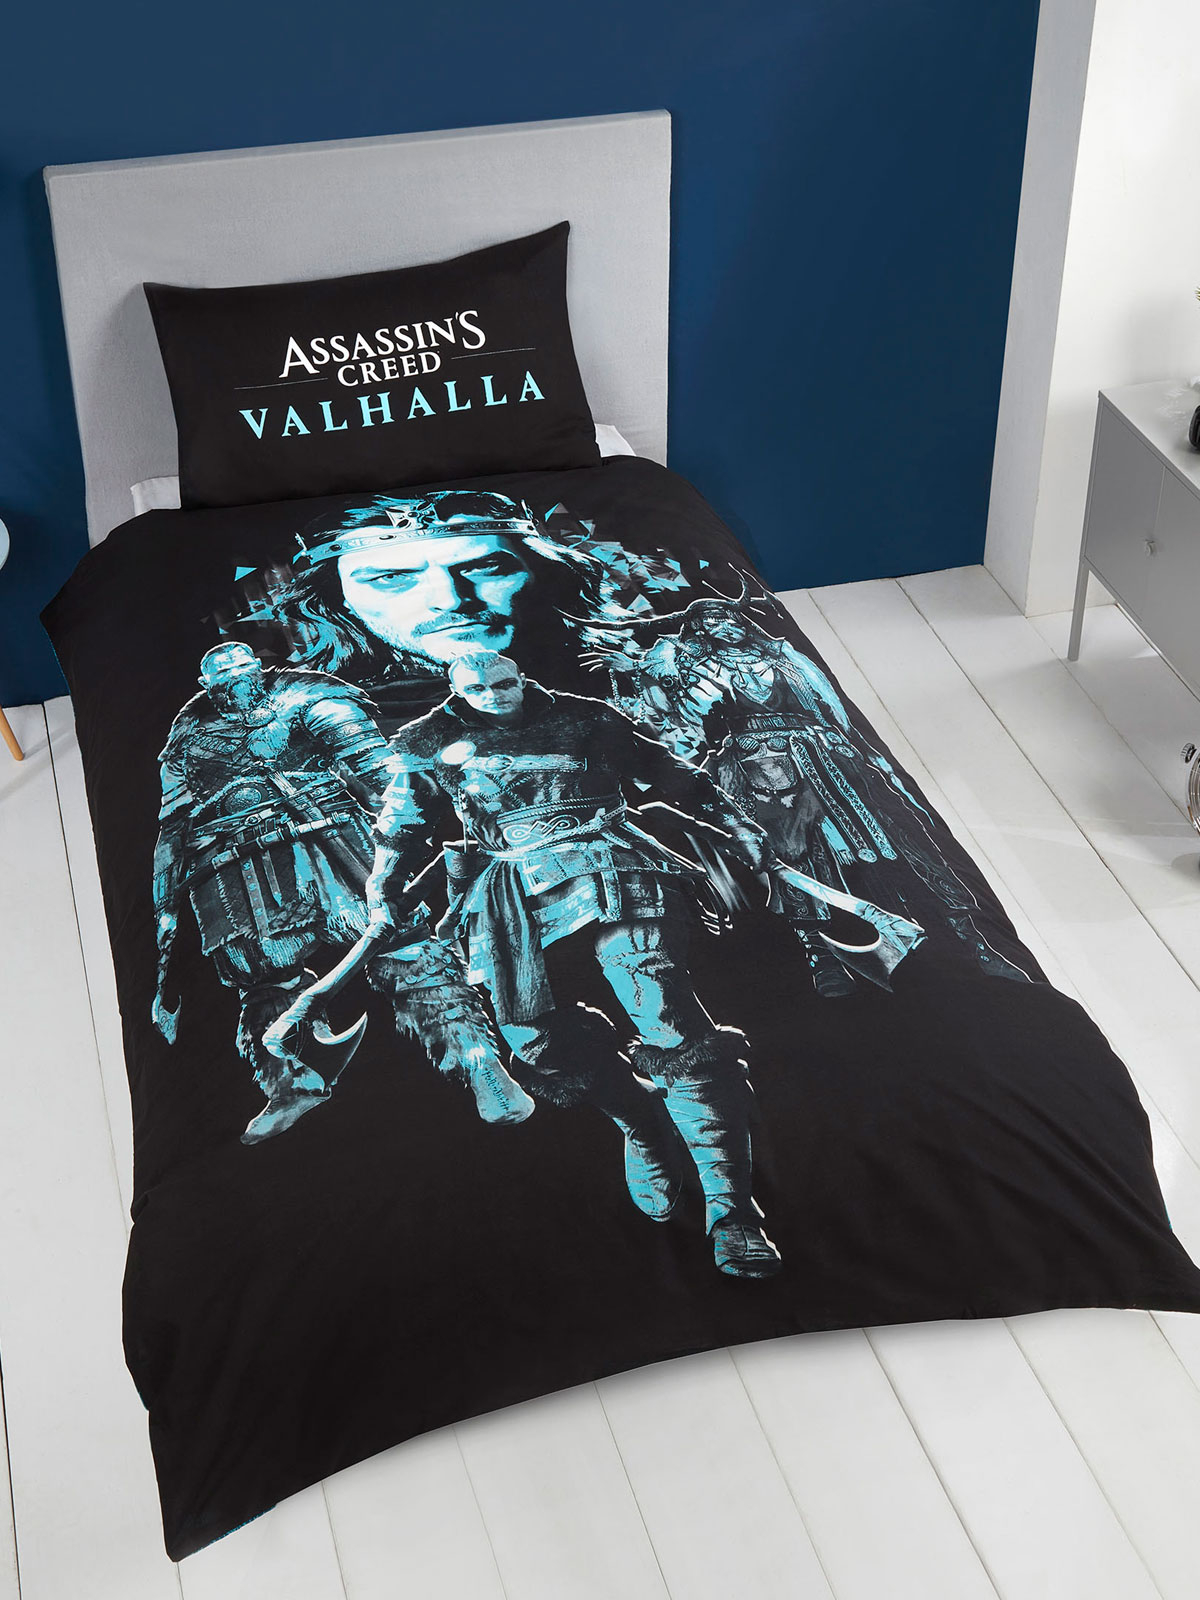 Assassin's Creed Valhalla Single Duvet Cover and Pillowcase Set